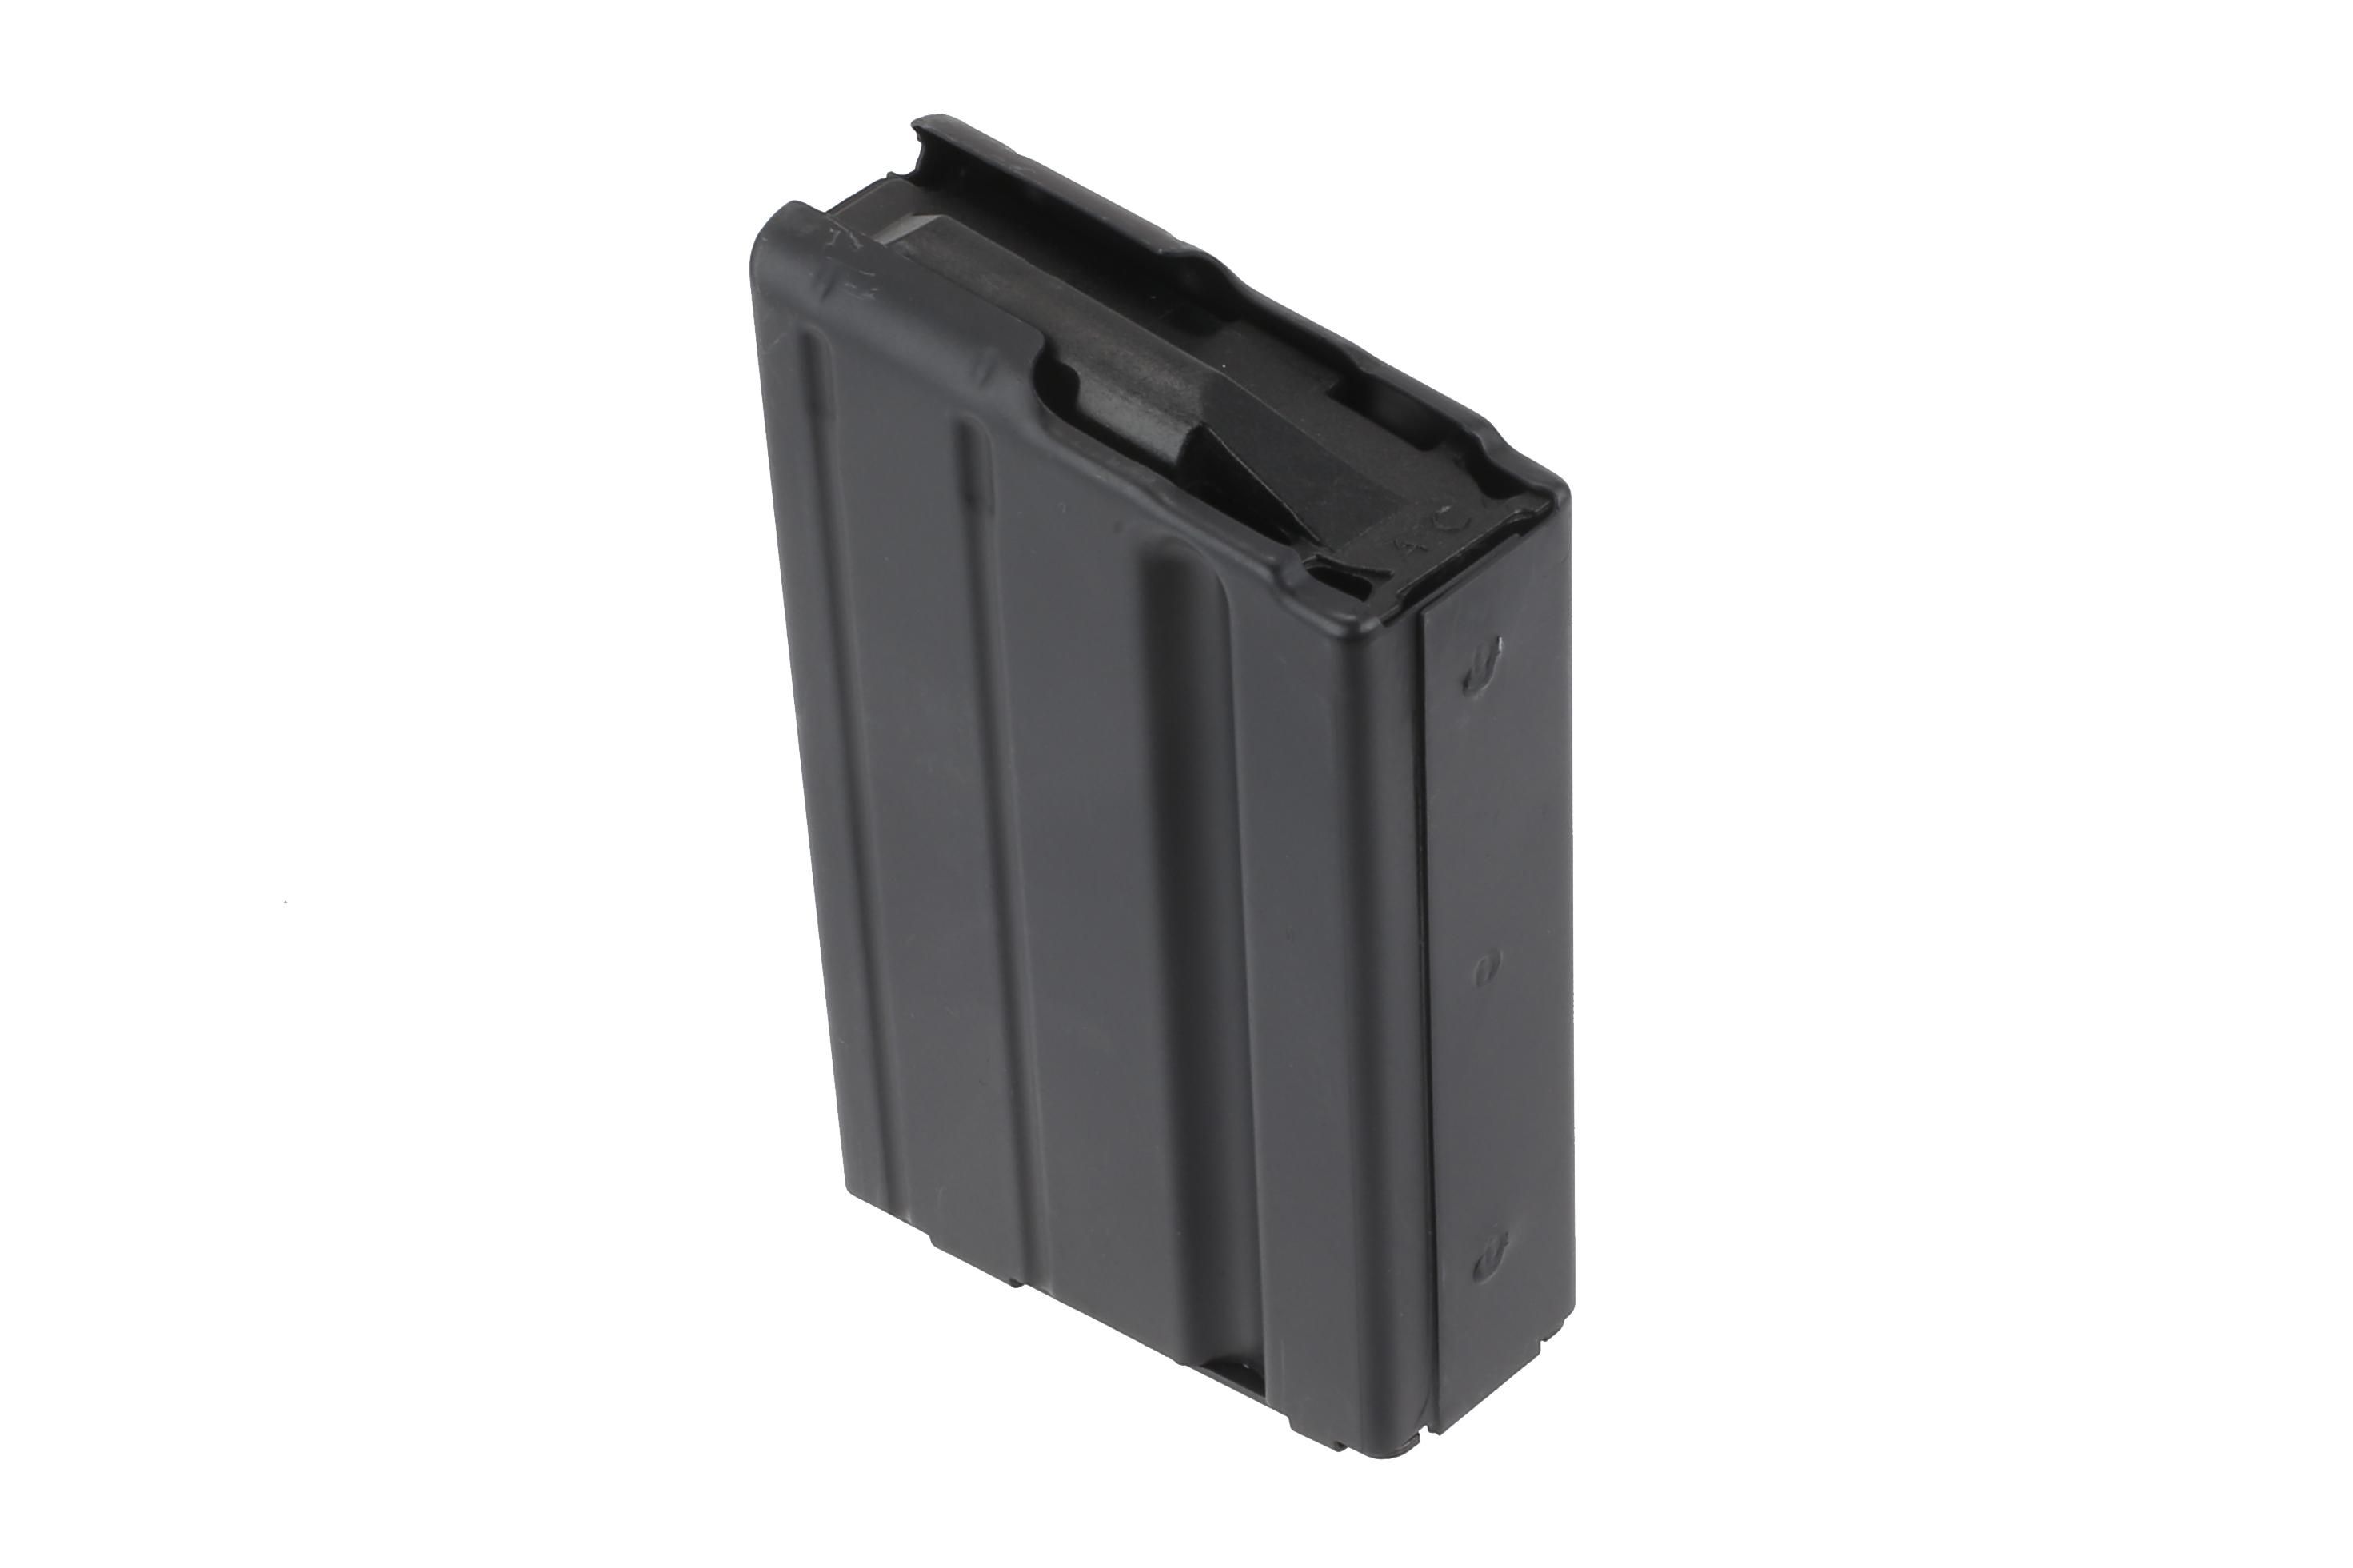 The 7.62 steel AR 15 Magazine from ASC features a 10 Round capacity and polymer follower